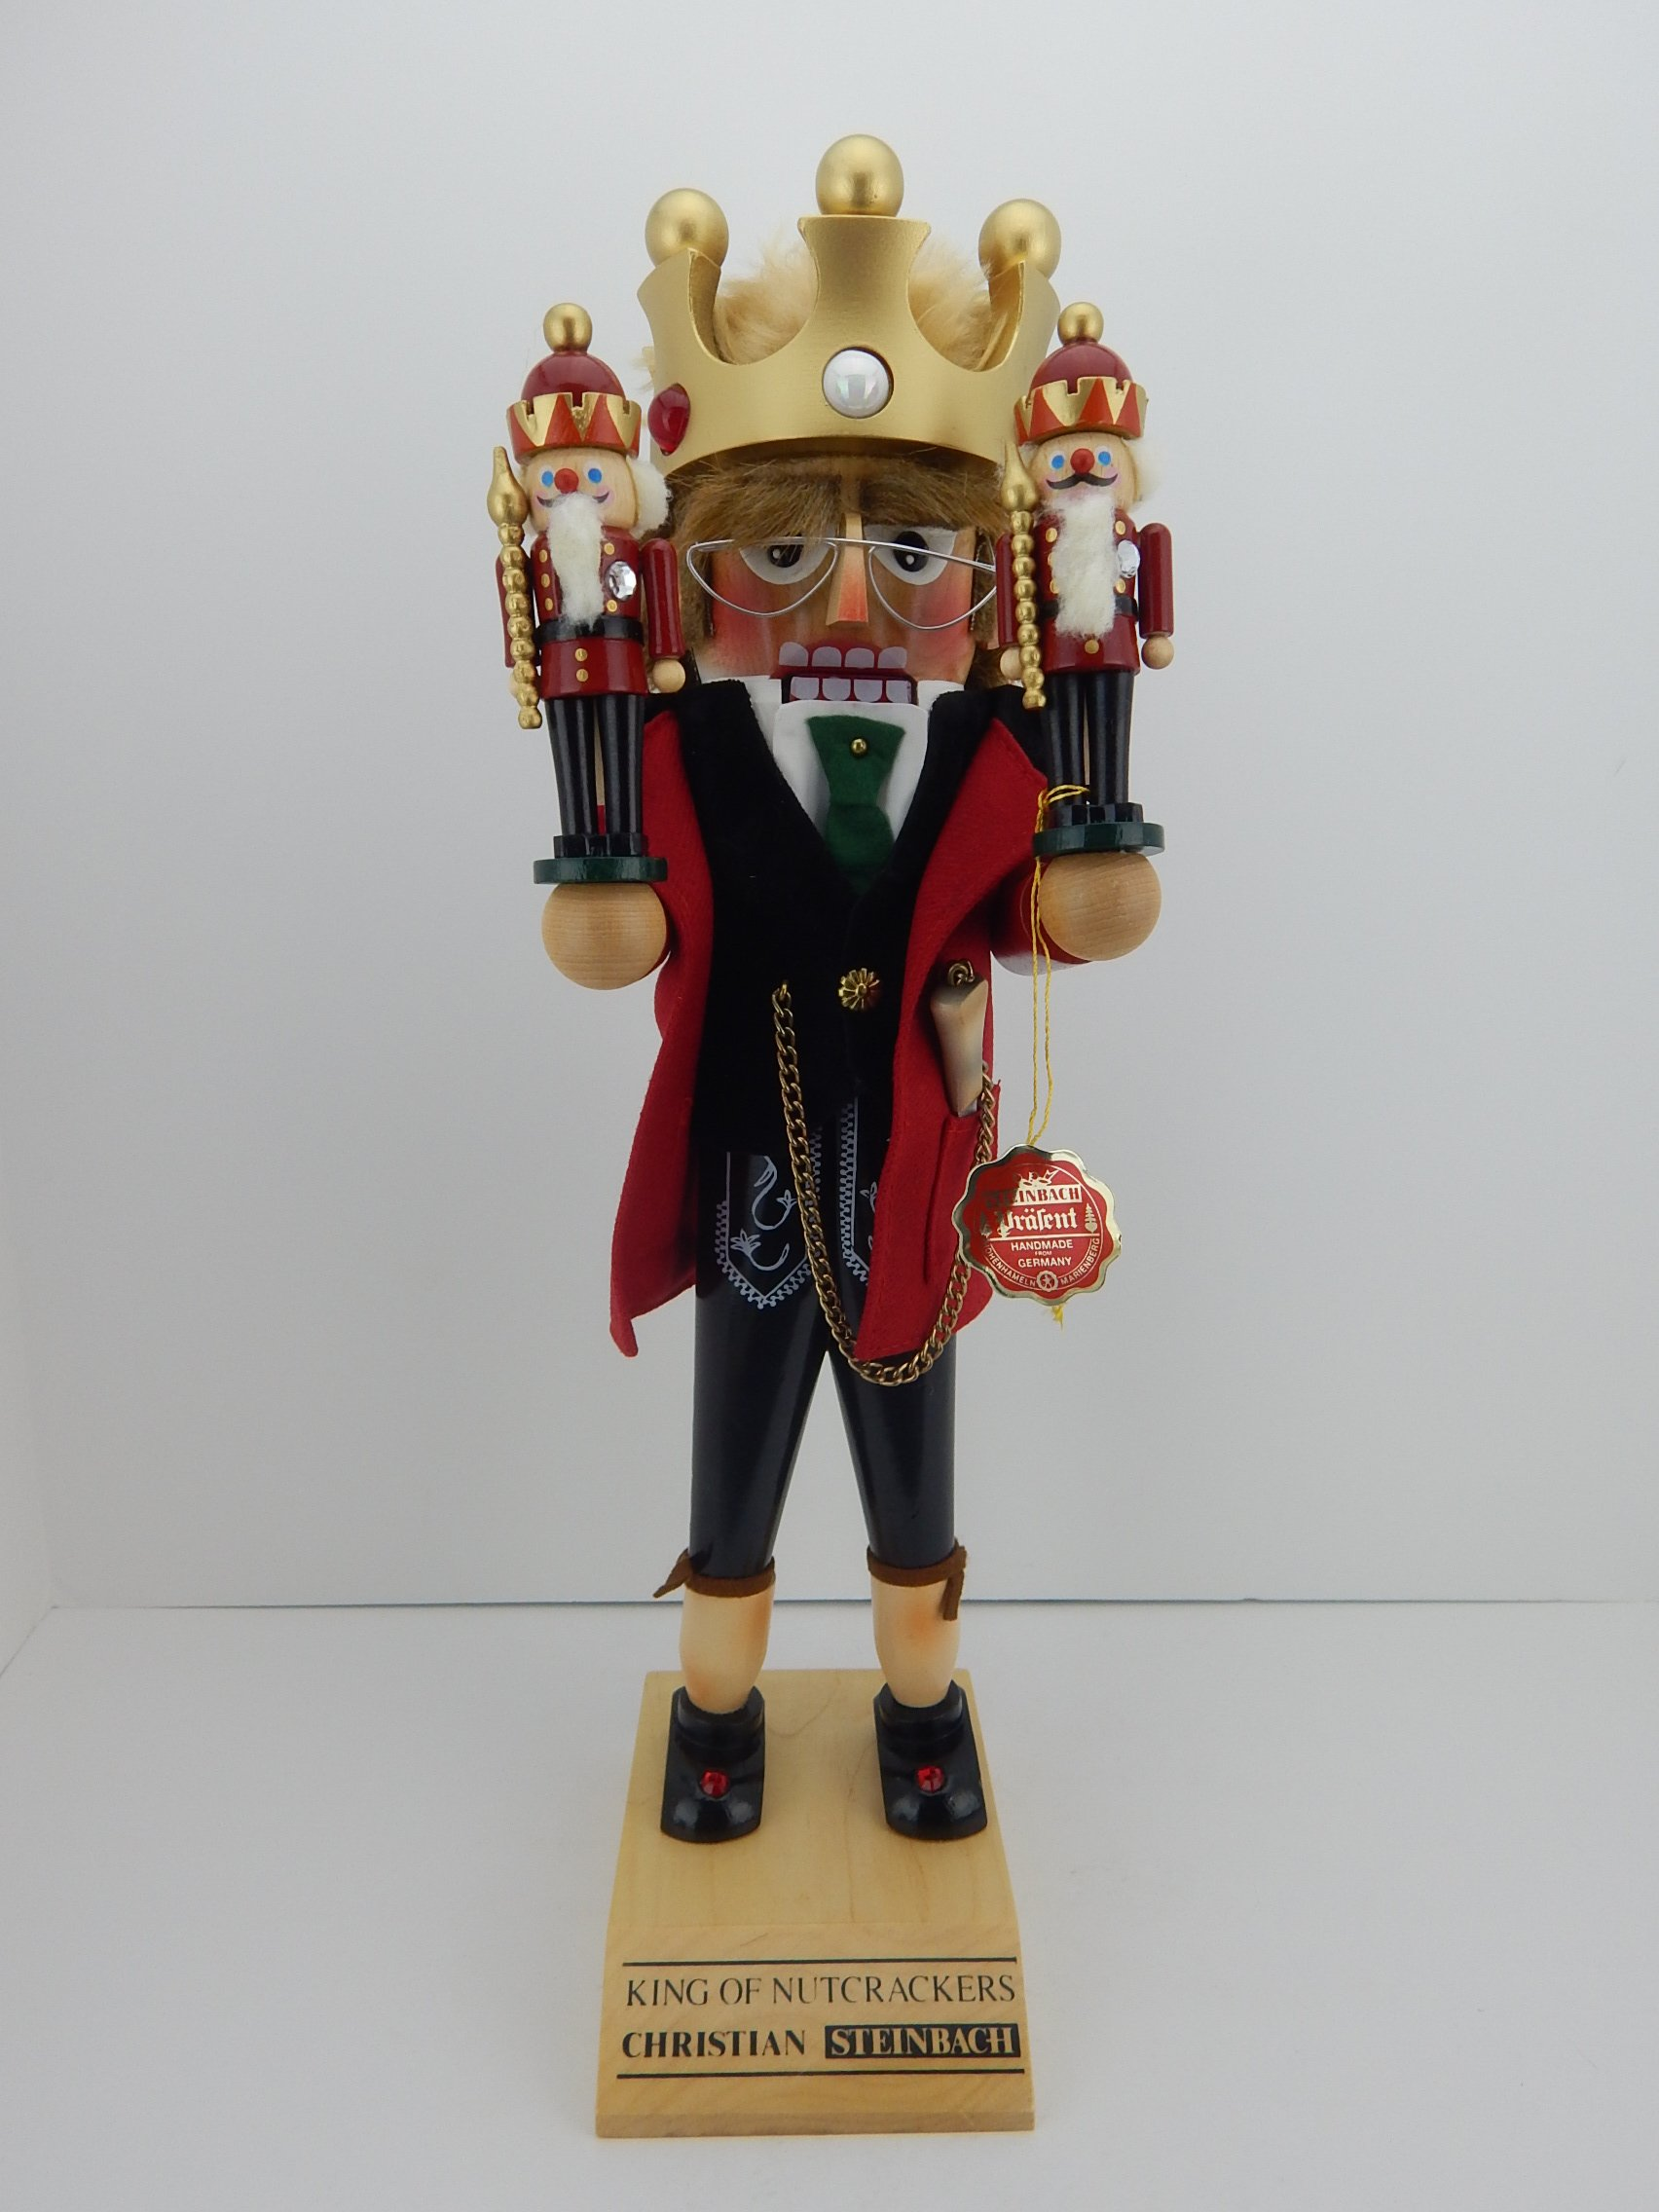 Steinbach Nutcracker King Christian ''King of Nutcrackers'' 18.5'' Tall by Steinbach